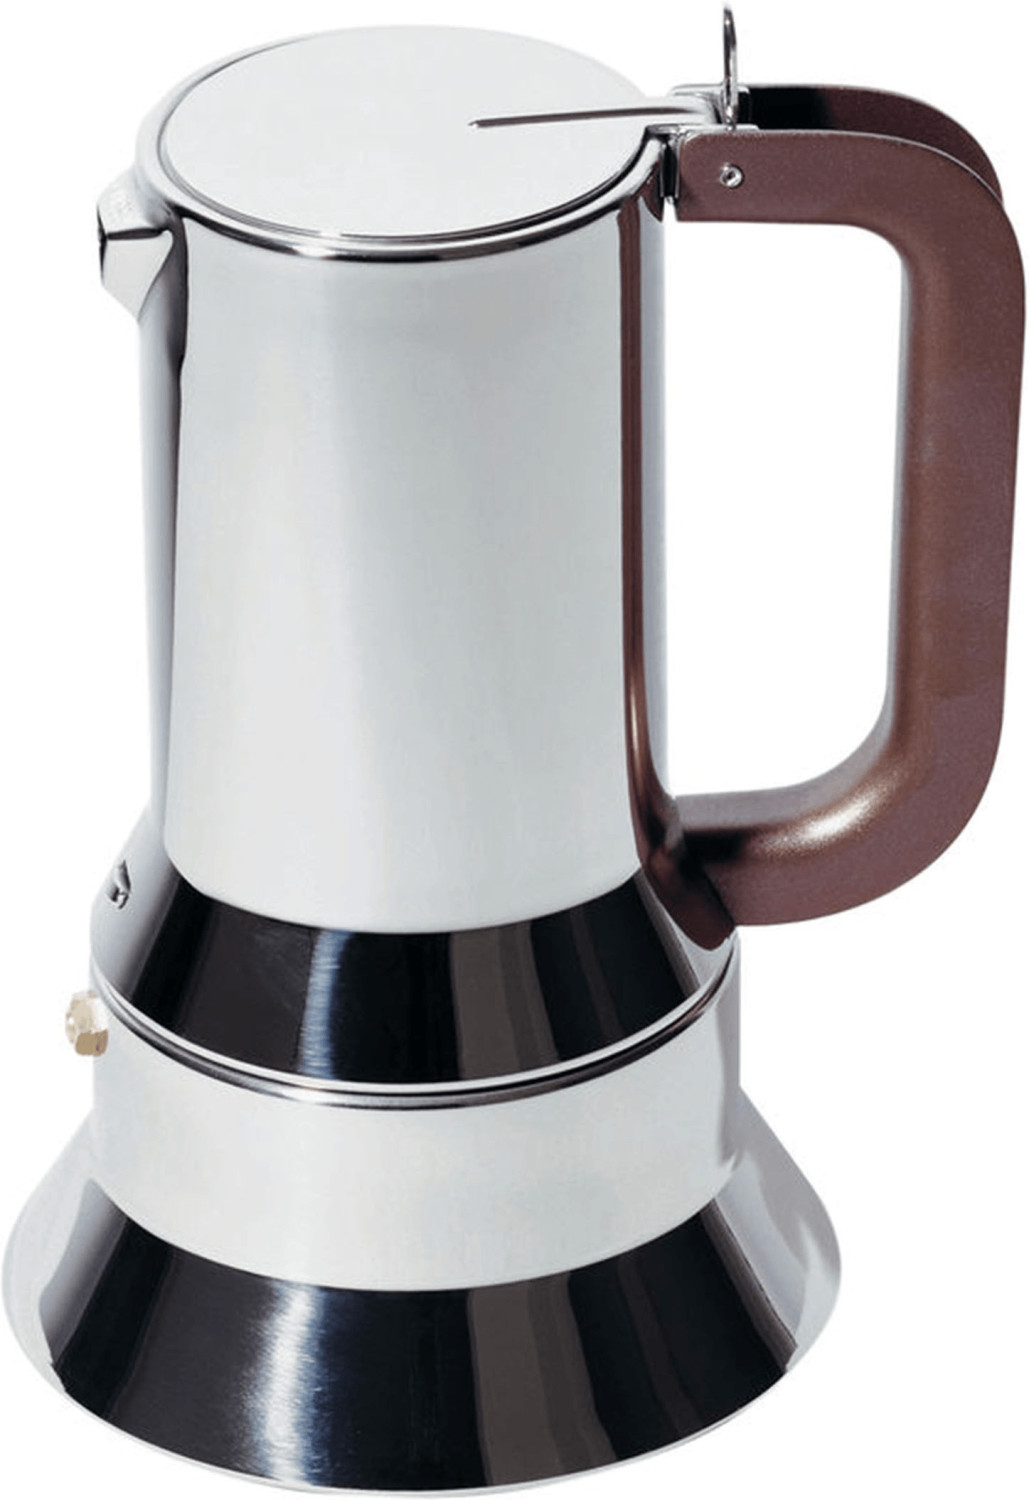 Image of Alessi 9090/M